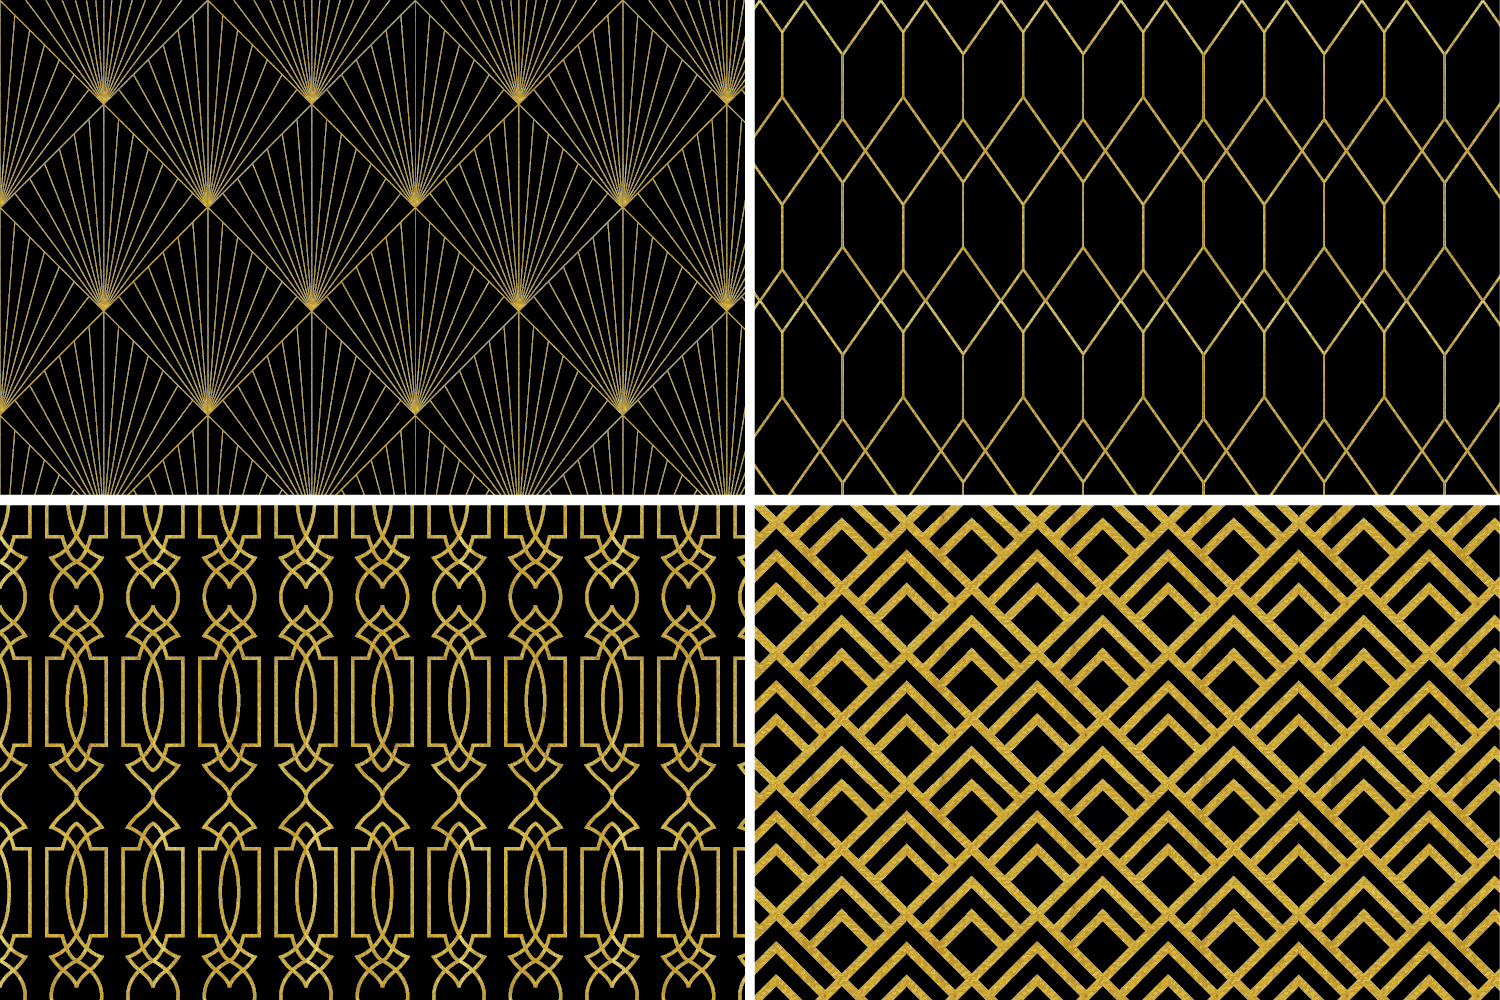 8 Seamless Art Deco Patterns - Black & Gold Set 1 example image 5